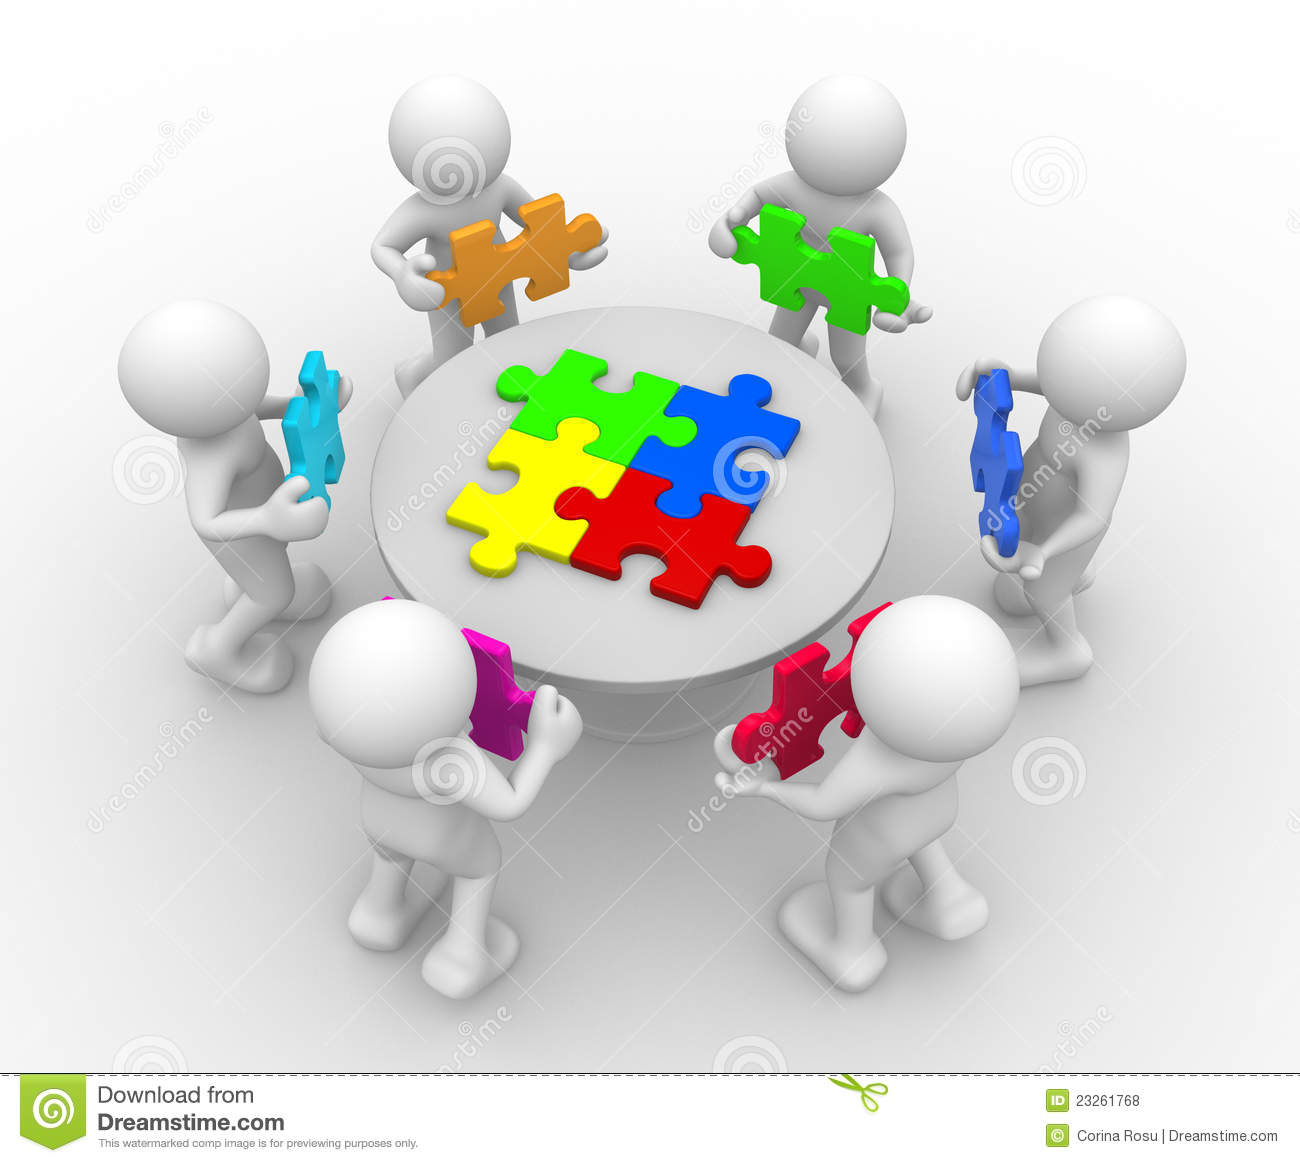 People Table Puzzle Stock Illustrations – 360 People Table Puzzle Stock  Illustrations, Vectors & Clipart - Dreamstime